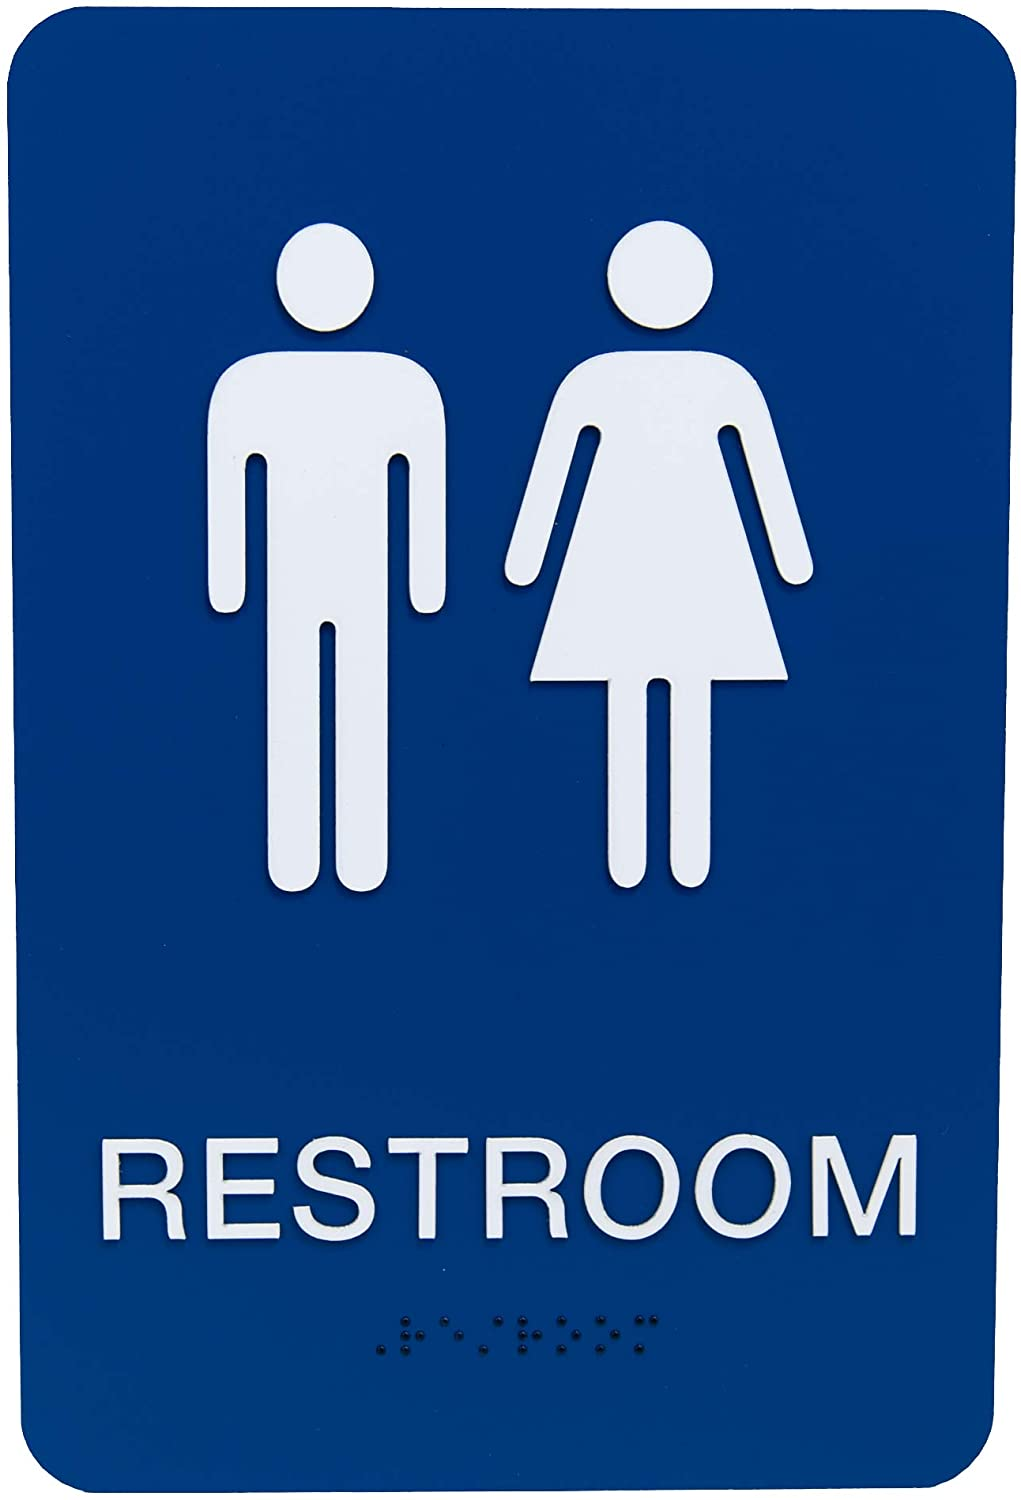 Non-Accessible/Wheelchair Unisex Gender Neutral ADA Restroom (Bathroom) Sign w/Braille - Blue